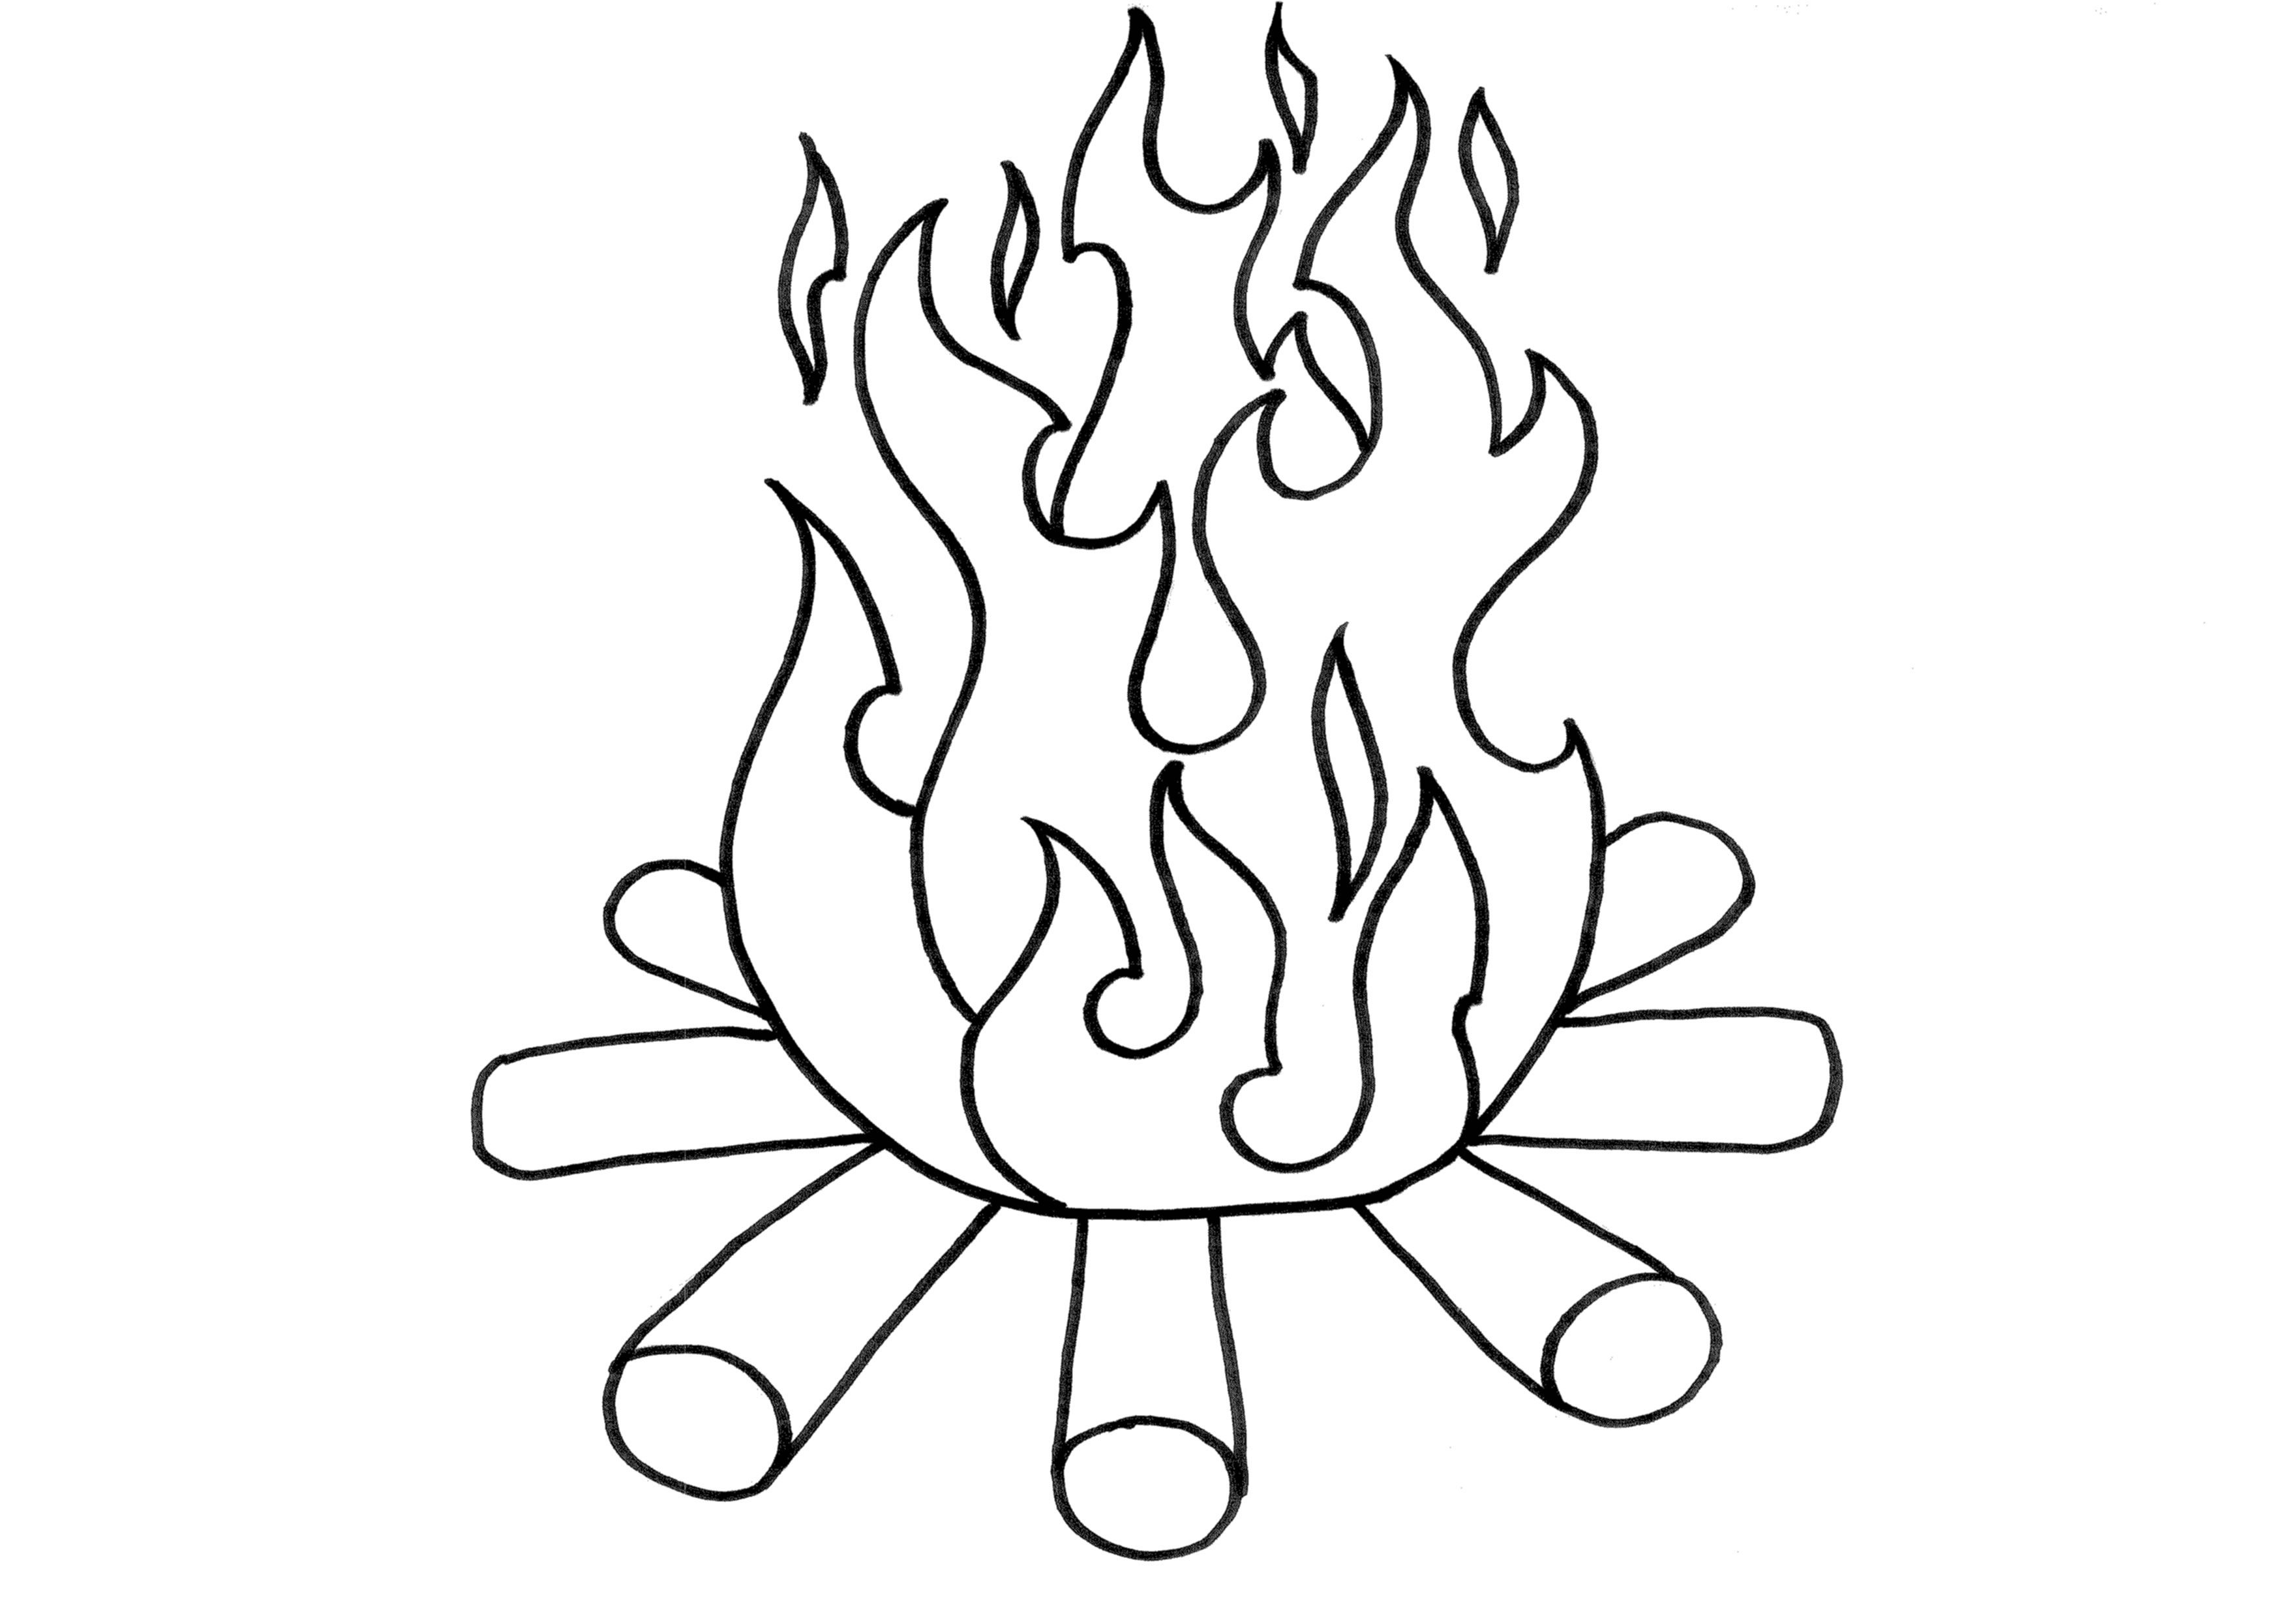 coloring house on fire drawing flames coloring pages coloring home house fire drawing coloring on